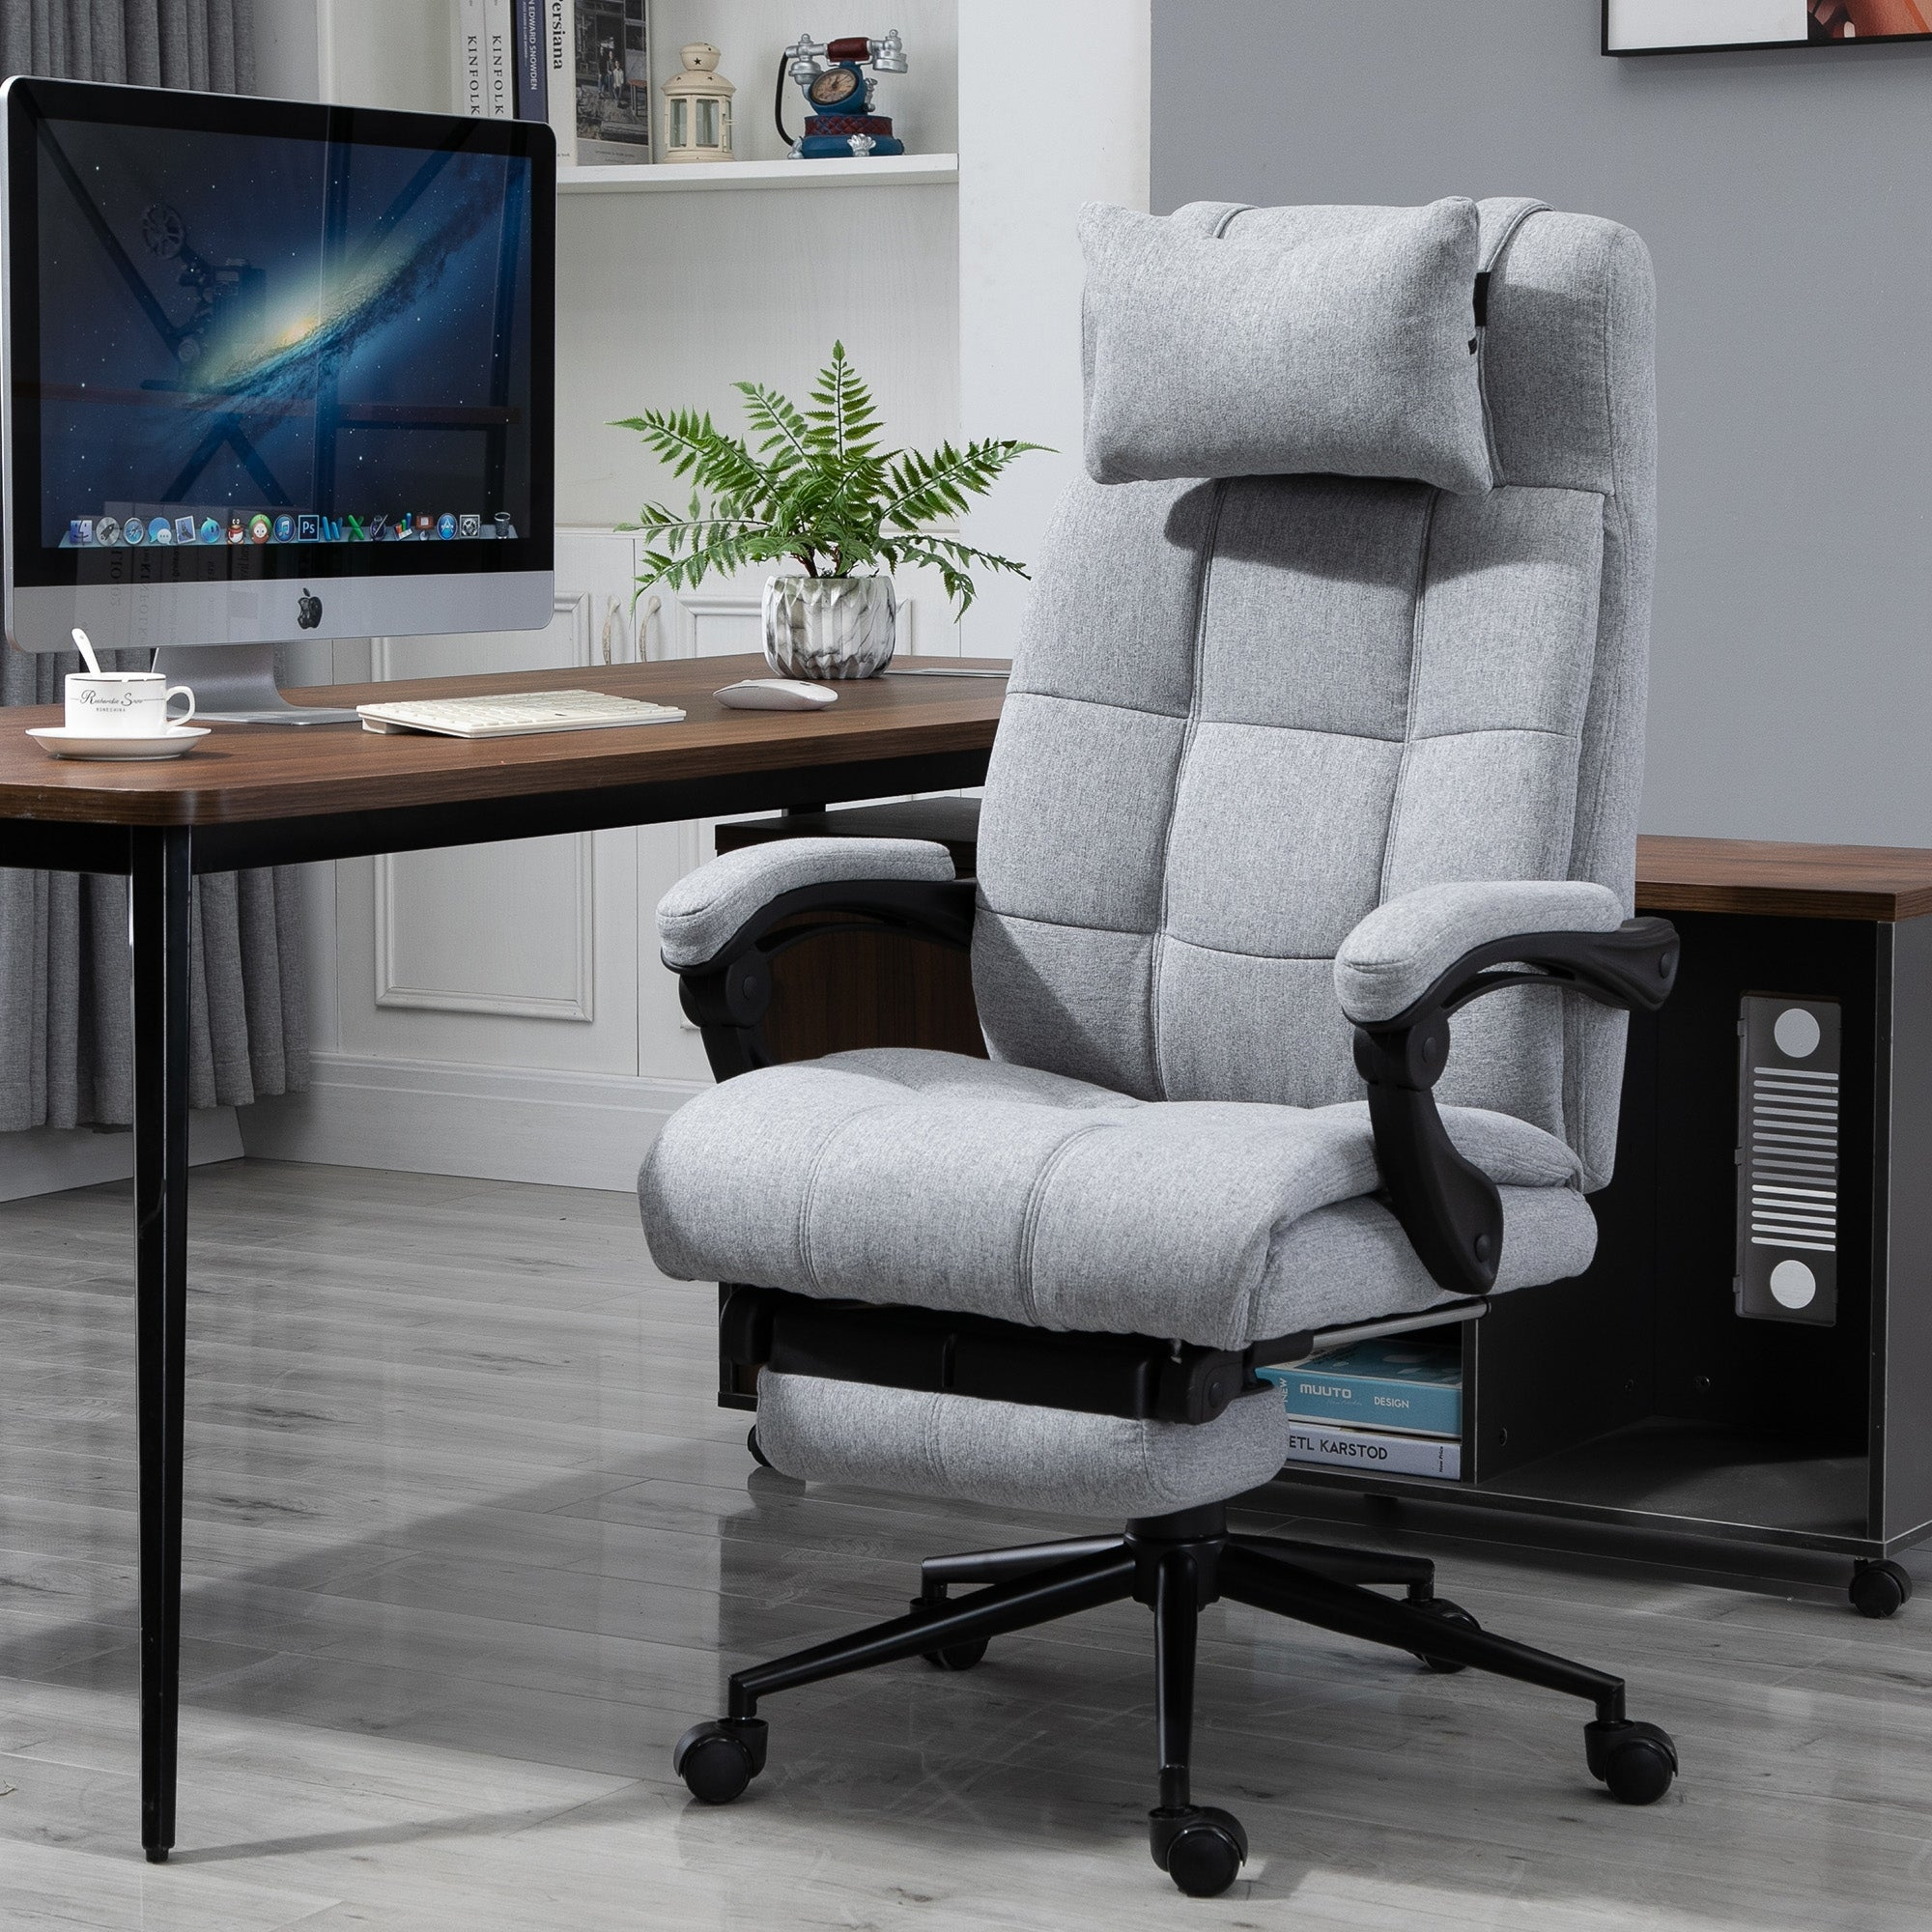 Shop Vinsetto Executive Linen Fabric Home Office Chair With Retractable Footrest Headrest And Lumbar Support Overstock 31629504